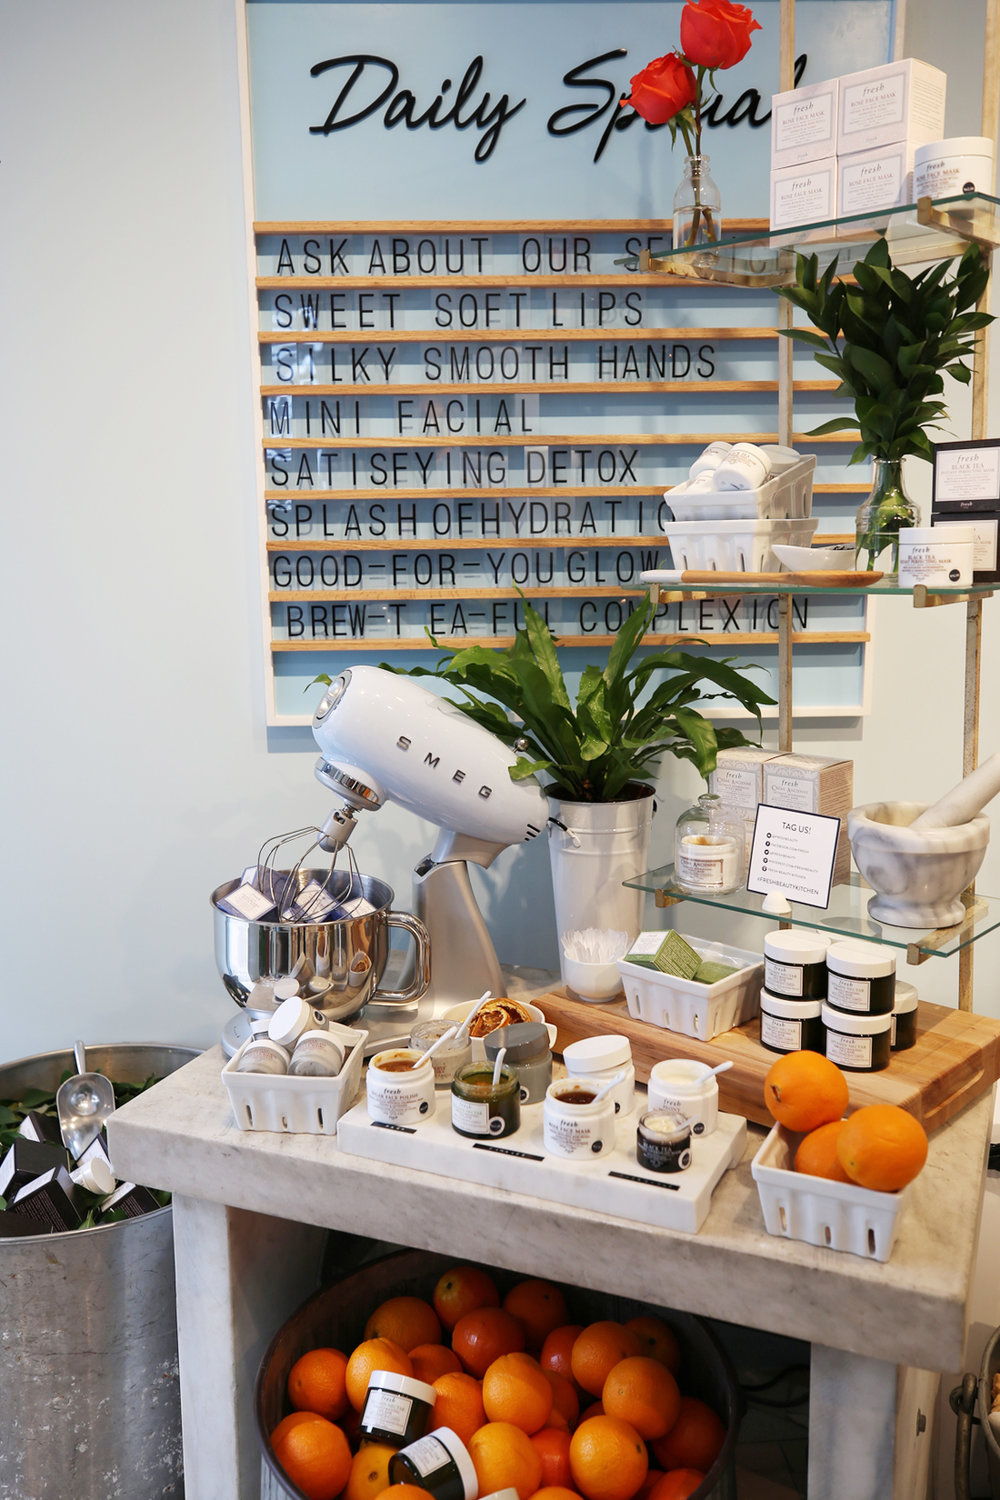 My Day at the Fresh Beauty Kitchen at 265 Lafayette Street New York, NY, photos by Nathalie Martin, woahstyle.com_0910.jpg